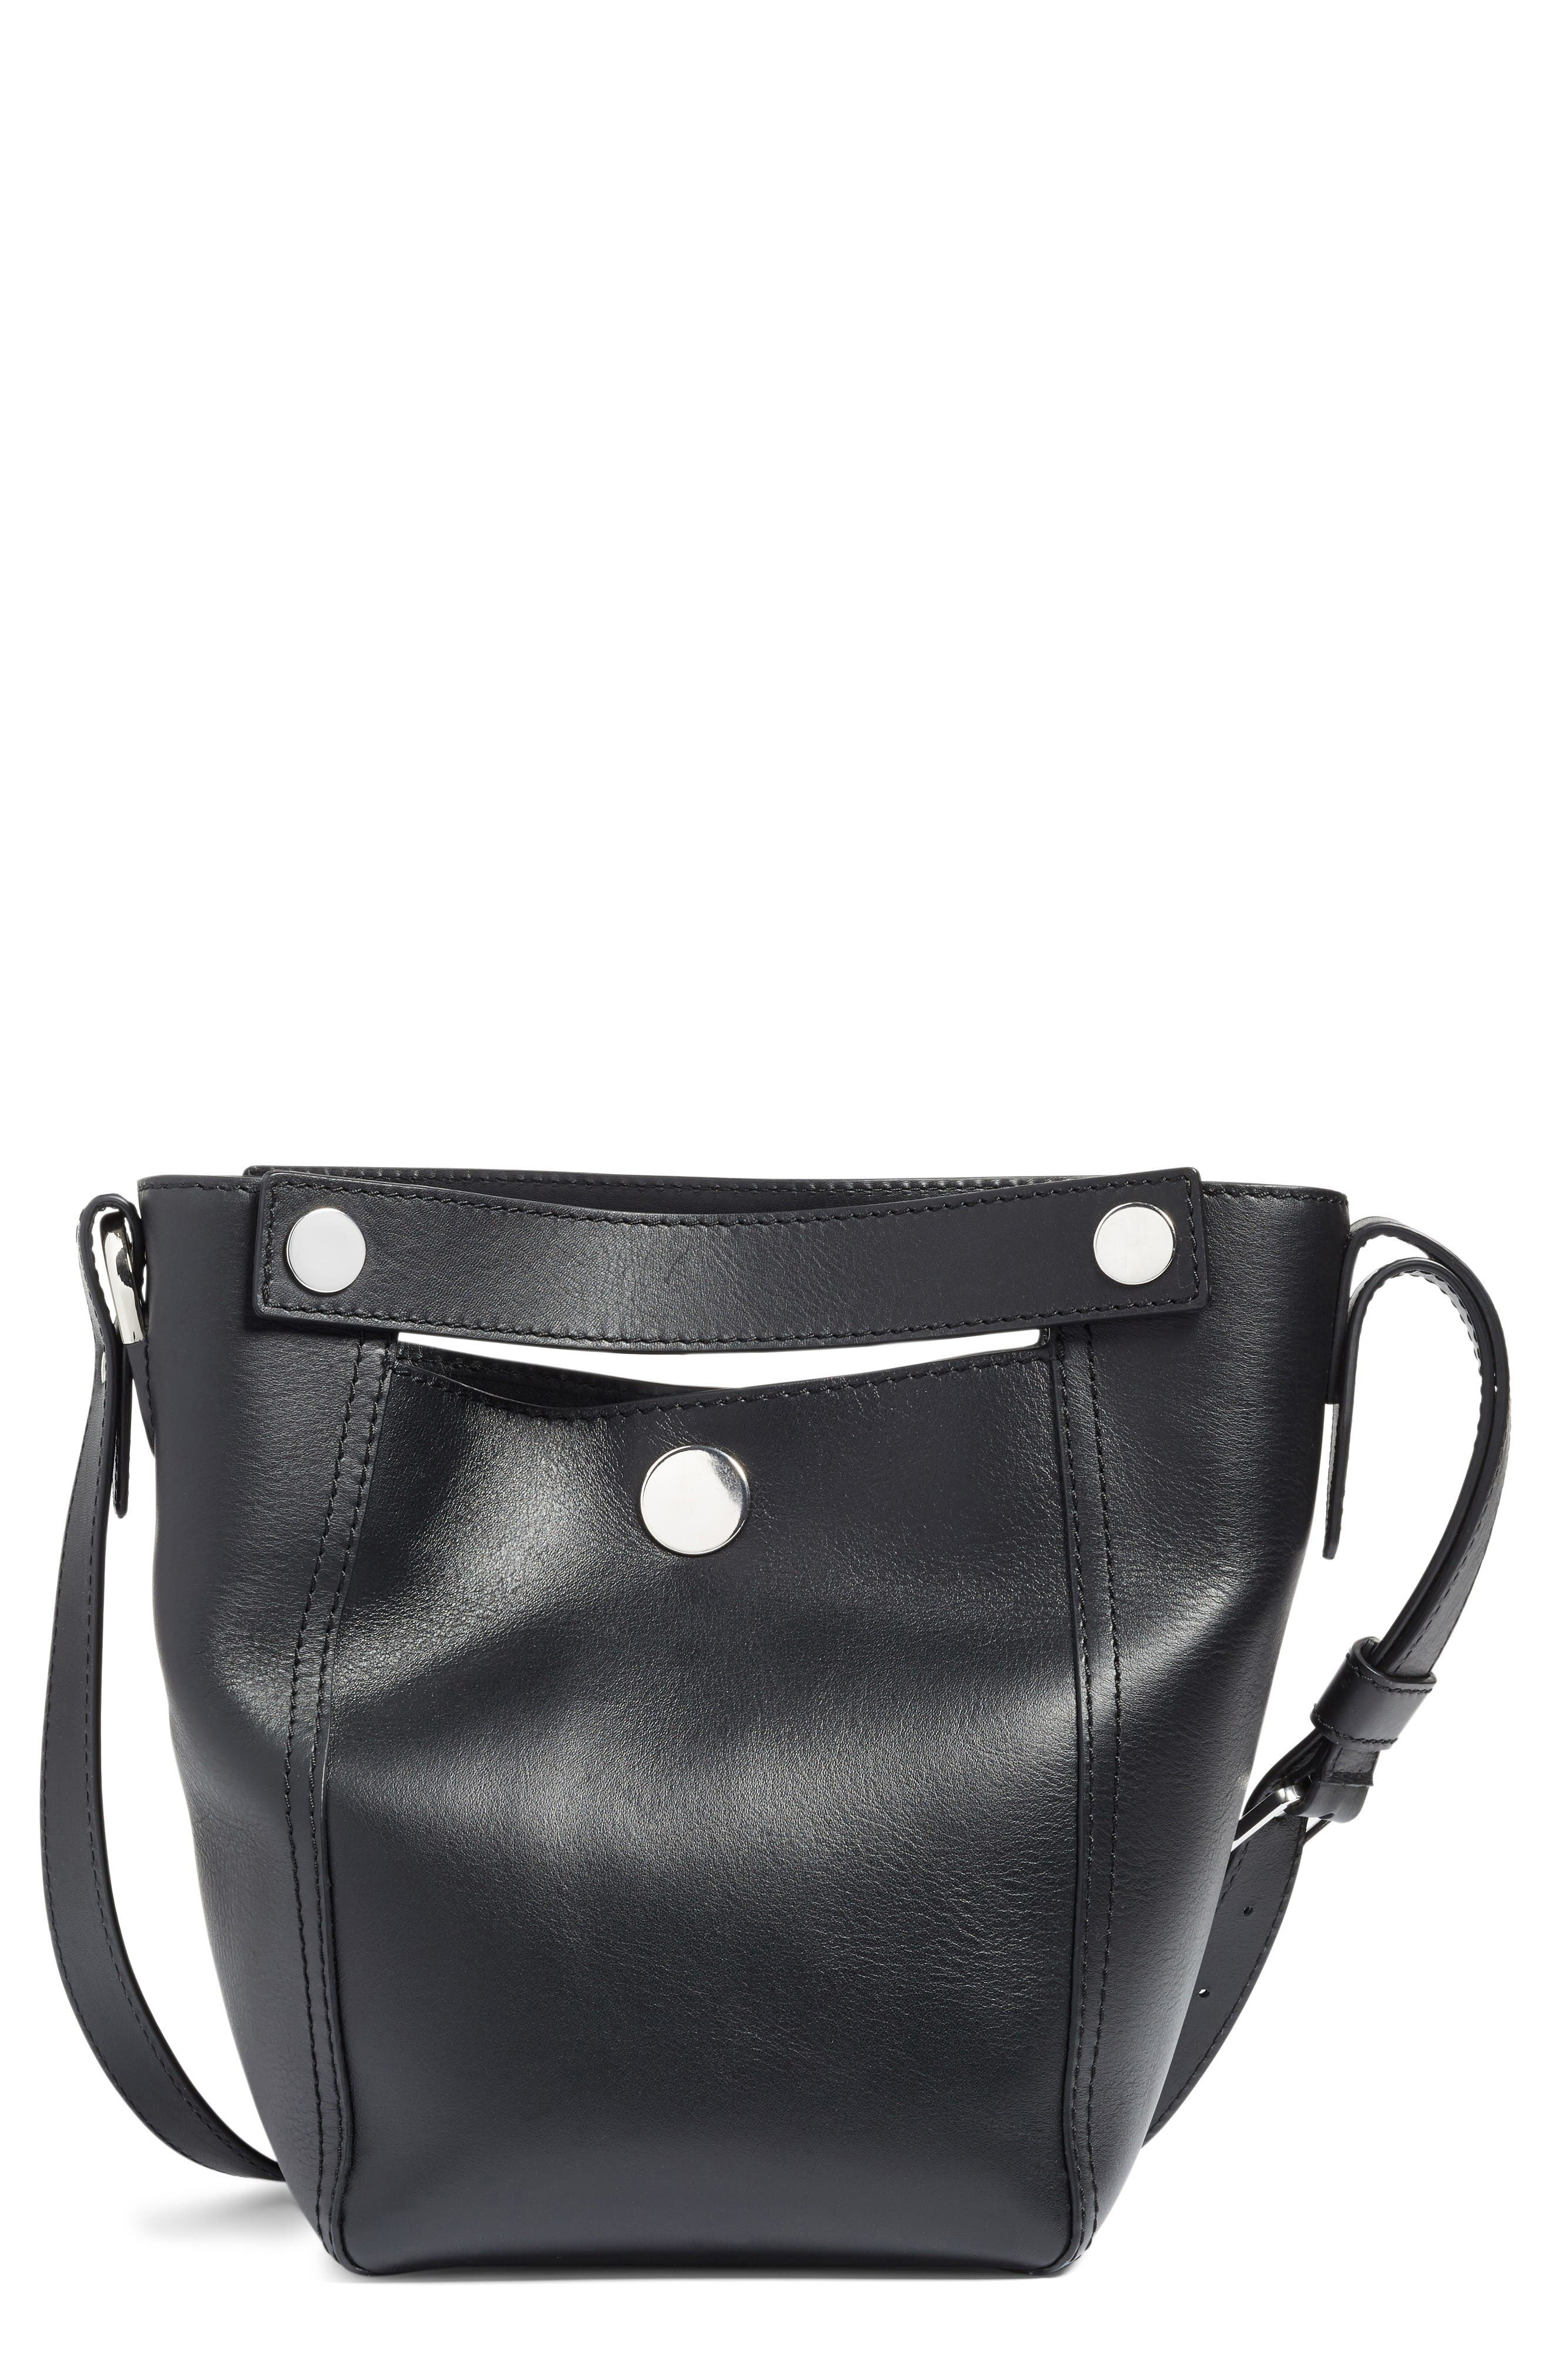 Alternate Image 1 Selected - 3.1 Phillip Lim Small Dolly Leather Tote